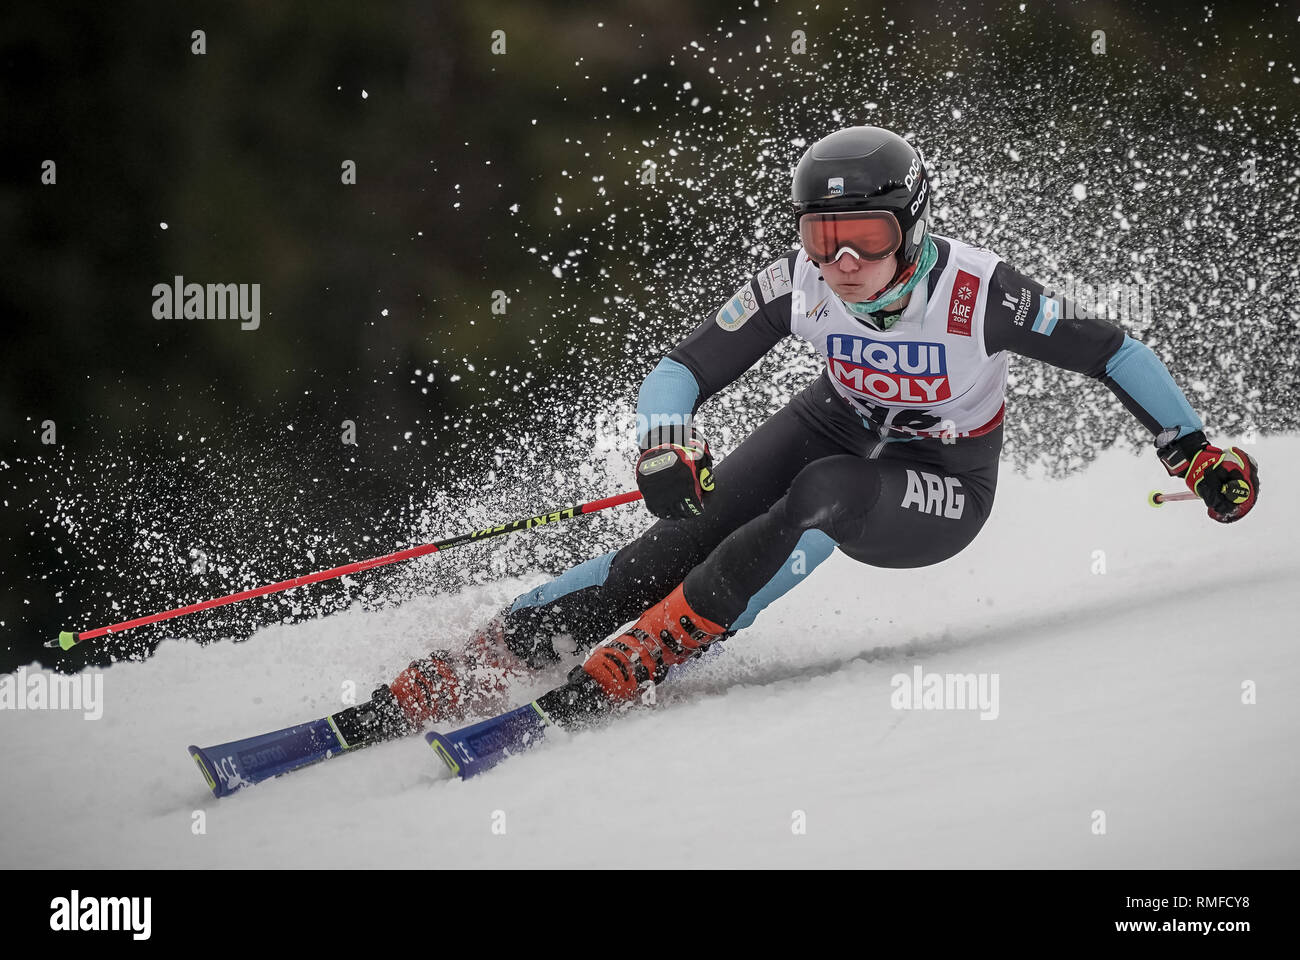 Are, Sweden. 14th Feb, 2019. Alpine skiing, world championship, giant slalom, women, 1st round: Nicol Gastaldi from Argentina on the race track. Credit: Michael Kappeler/dpa/Alamy Live News - Stock Image